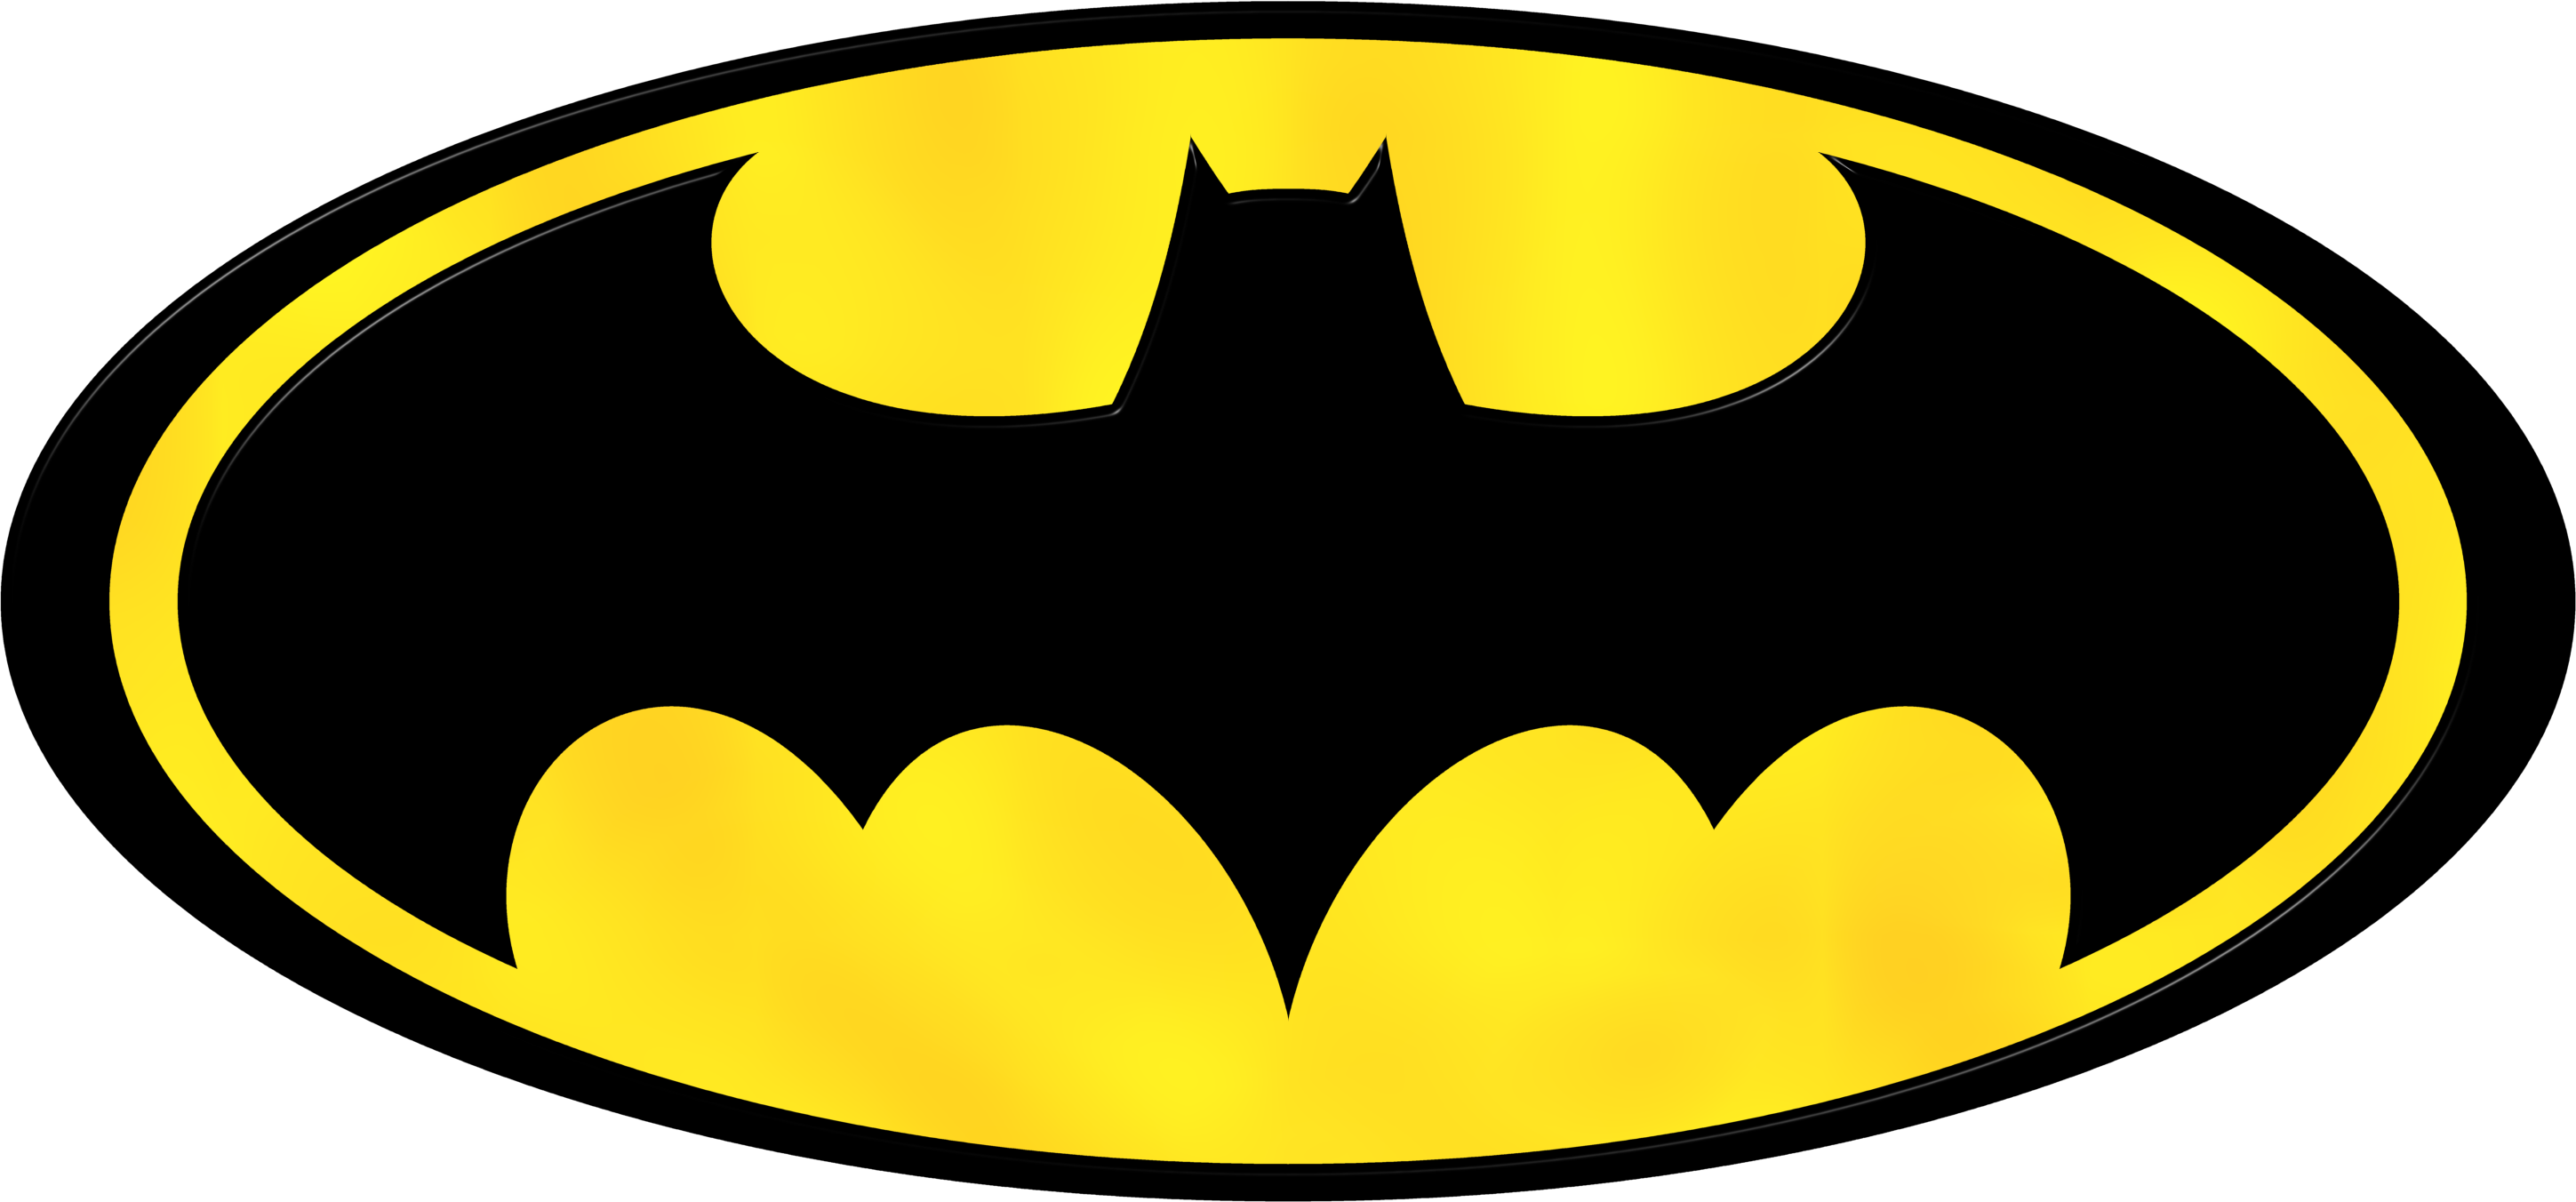 Batman symbol the dark knight clipart best Batman symbol